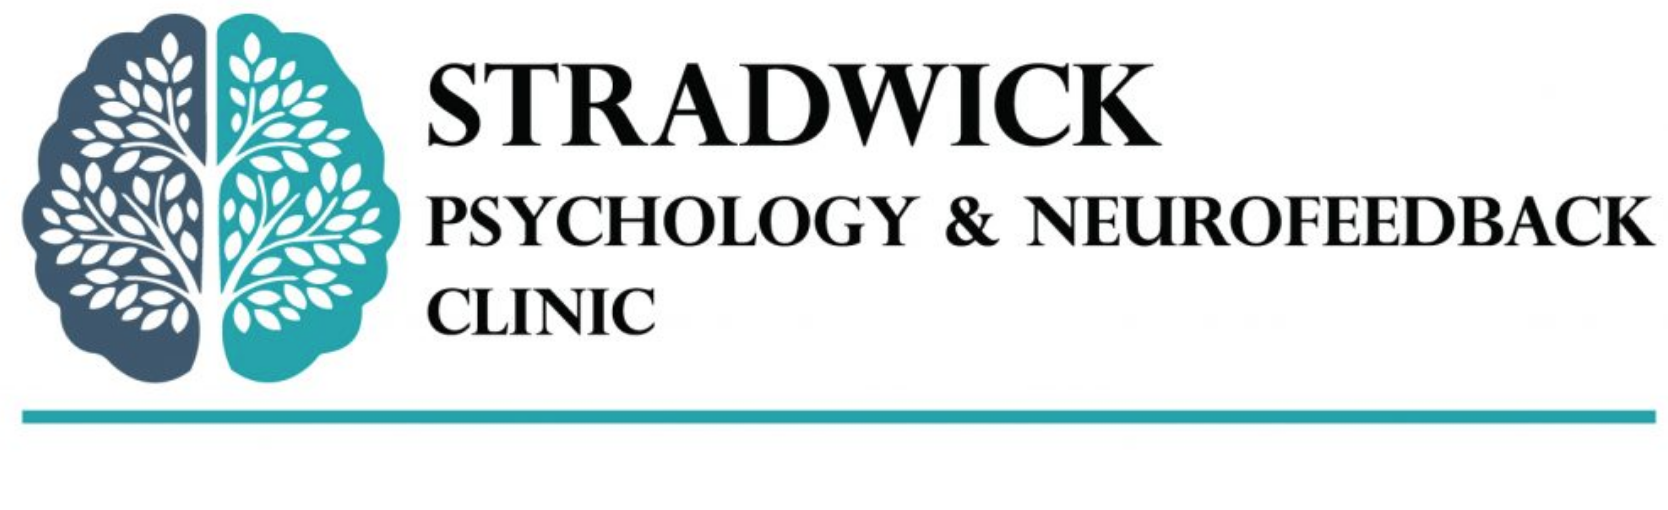 Stradwick Psychology & Neurofeedback Clinic